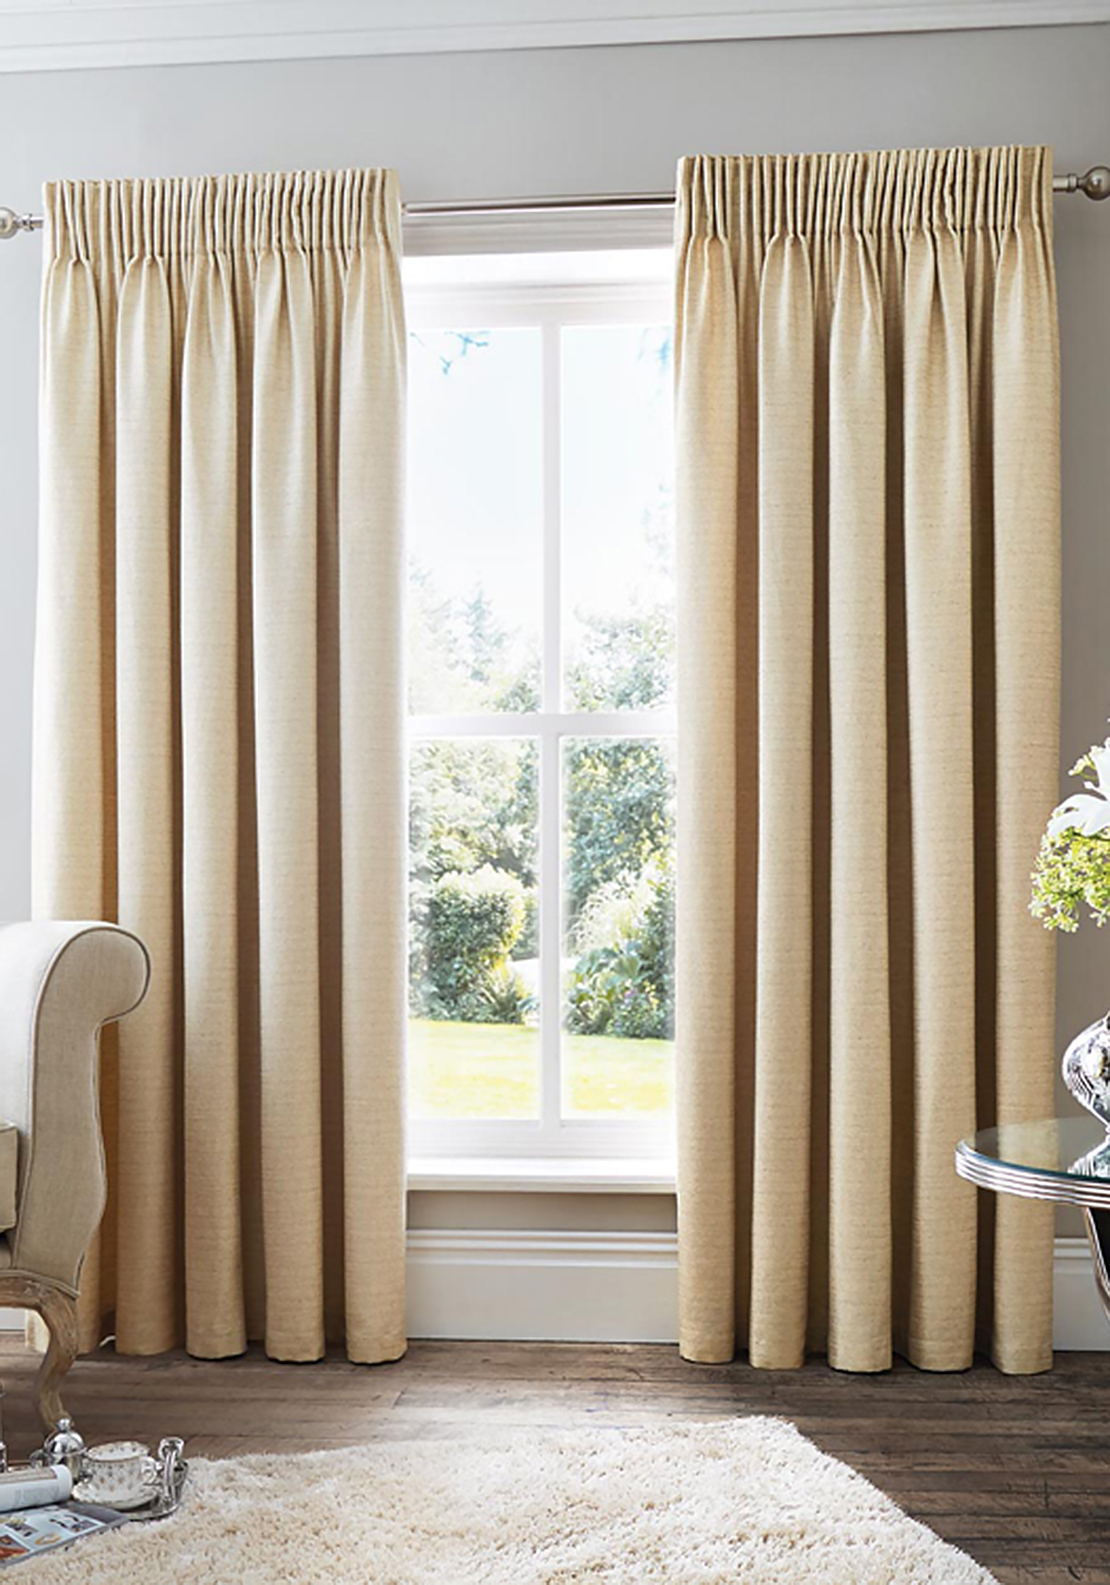 Curtina Rimini Fully Lined Curtains, Natural